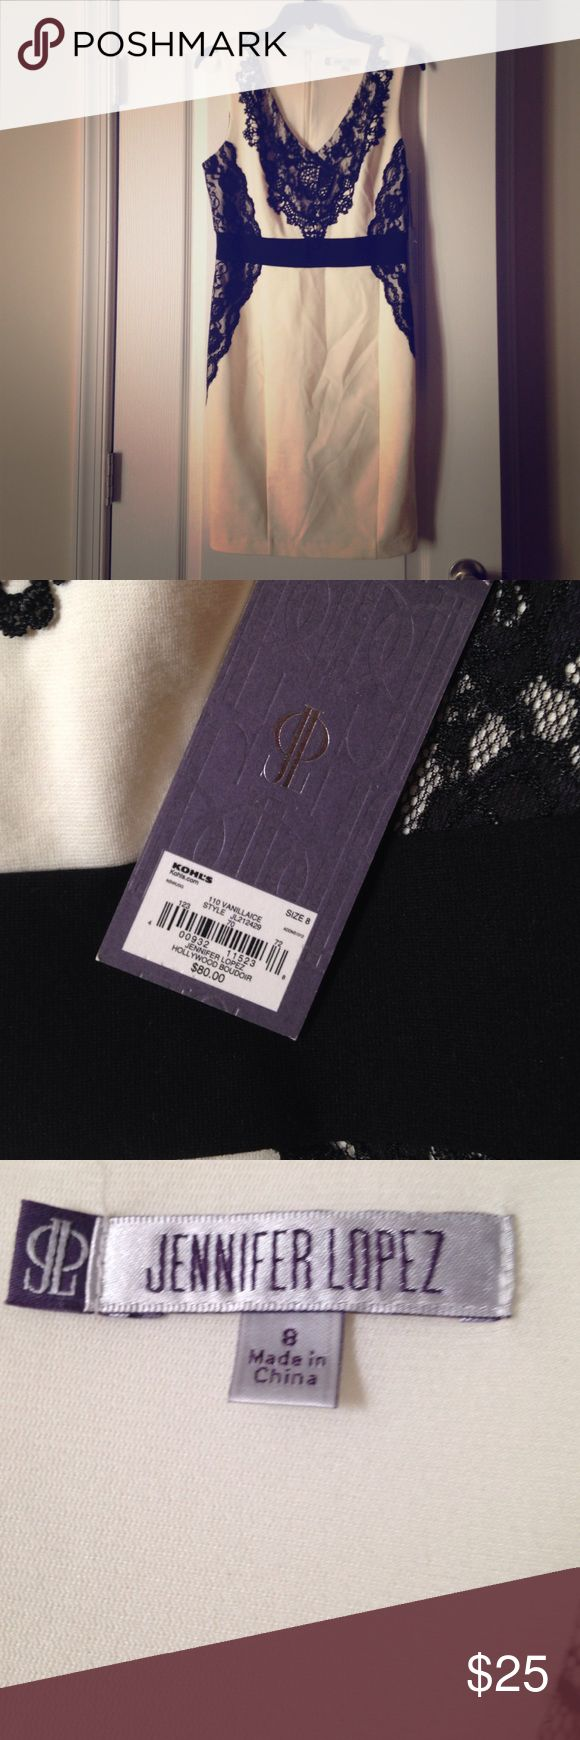 NWT Stunning JLO Professional/ Classy Dress NWT. Beautiful Jennifer Lopez dress. Can it can be worn as a business professional dress or just a night out. It is approximately kneelength. MSRP $80. It has lace appliqué. You can't beat this deal! Check out my other listings for bundle deals! Jennifer Lopez Dresses